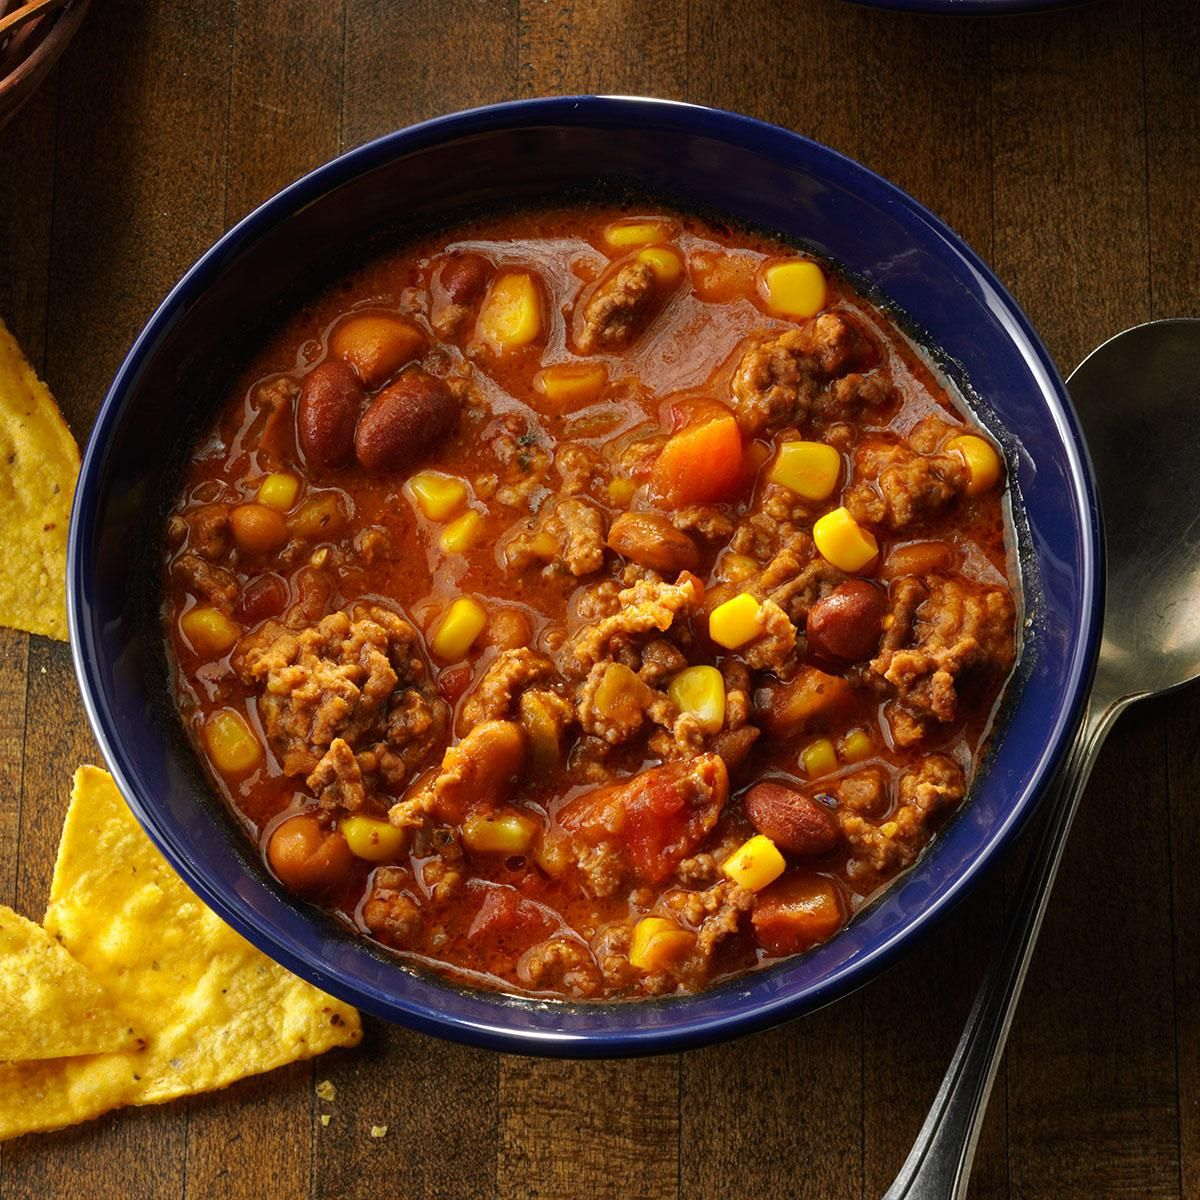 crock pot recipes for thanksgiving side dishes